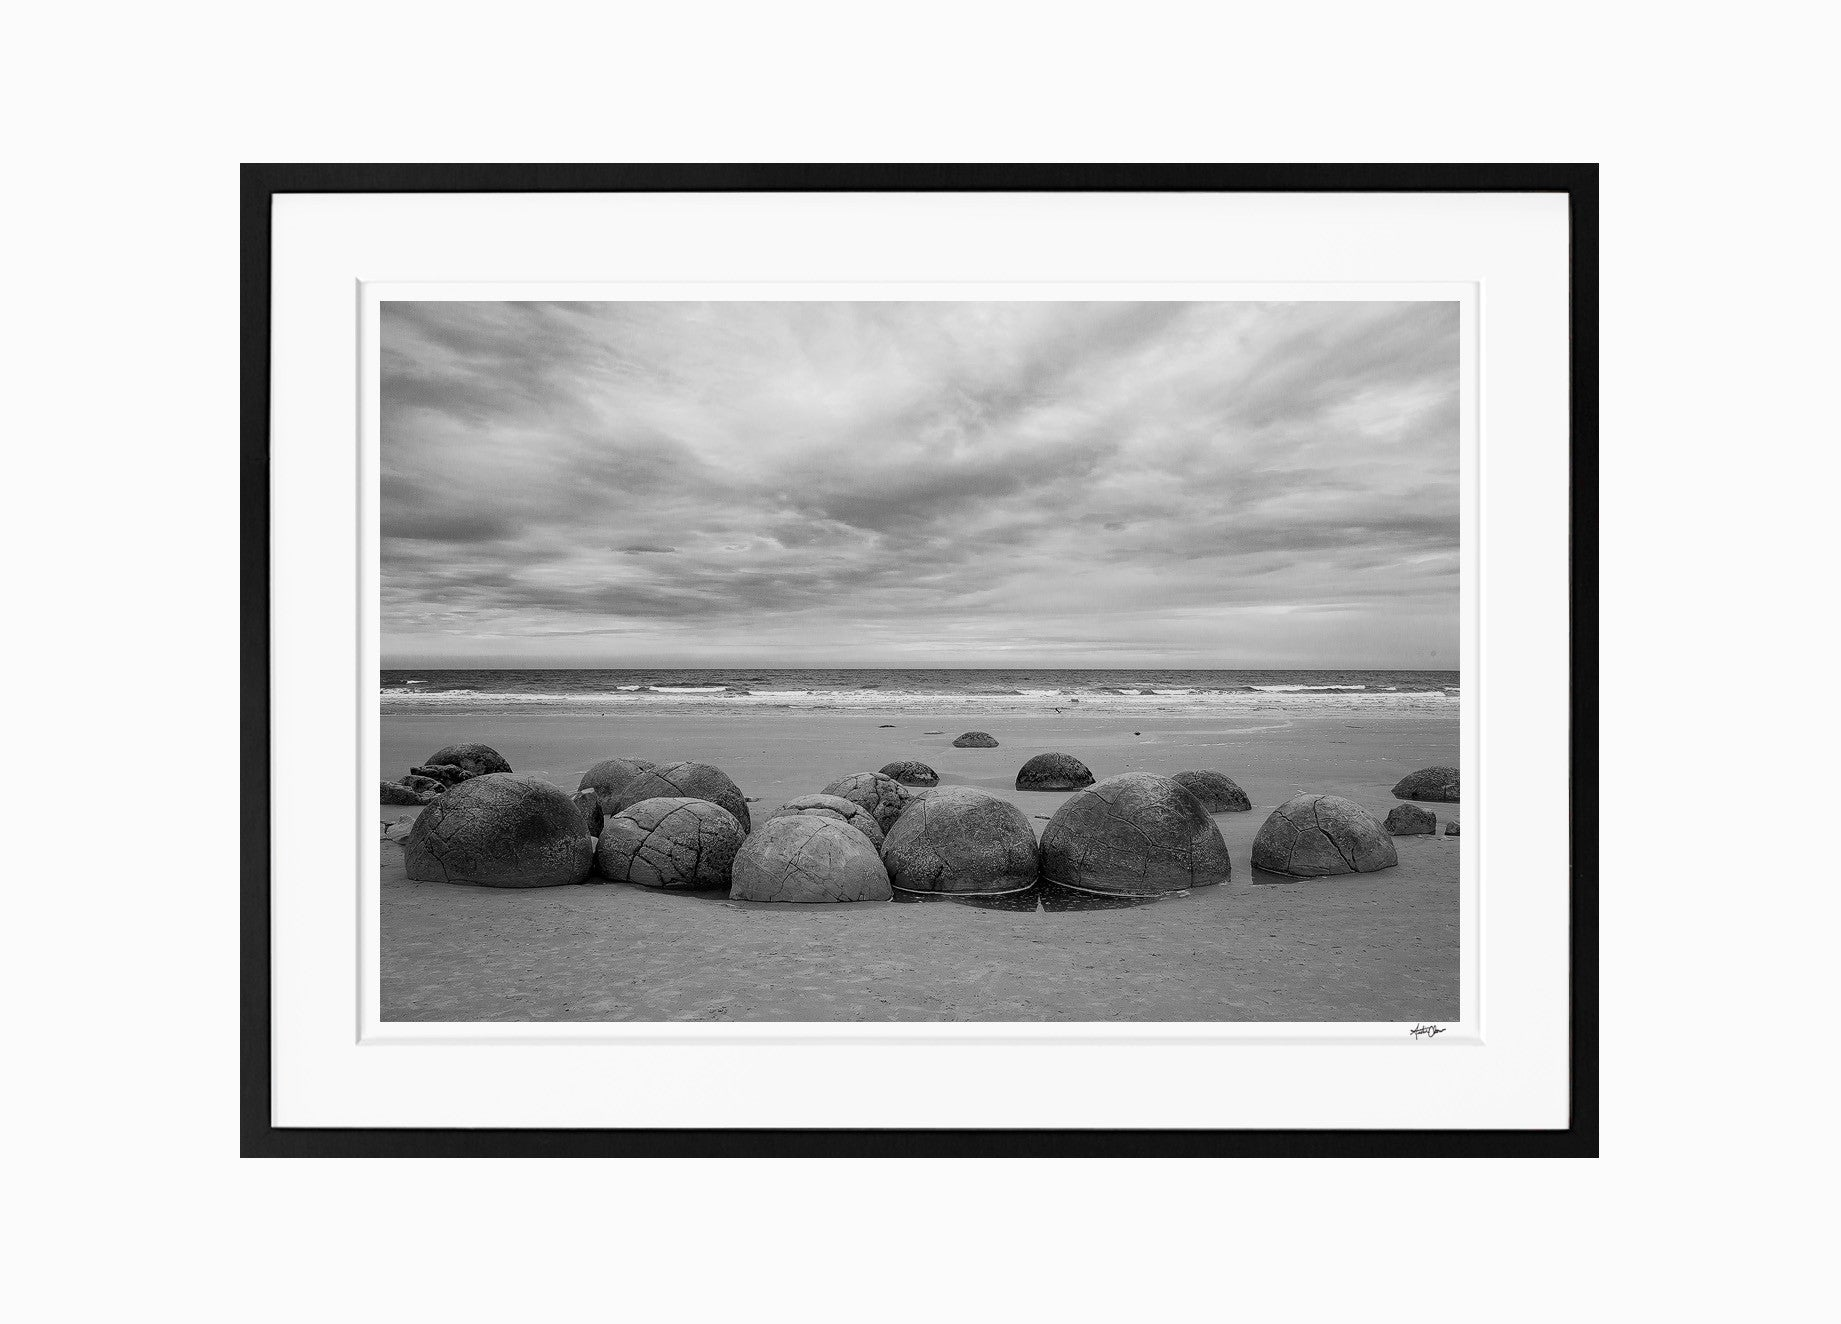 Beached // Moeraki Boulders, New Zealand